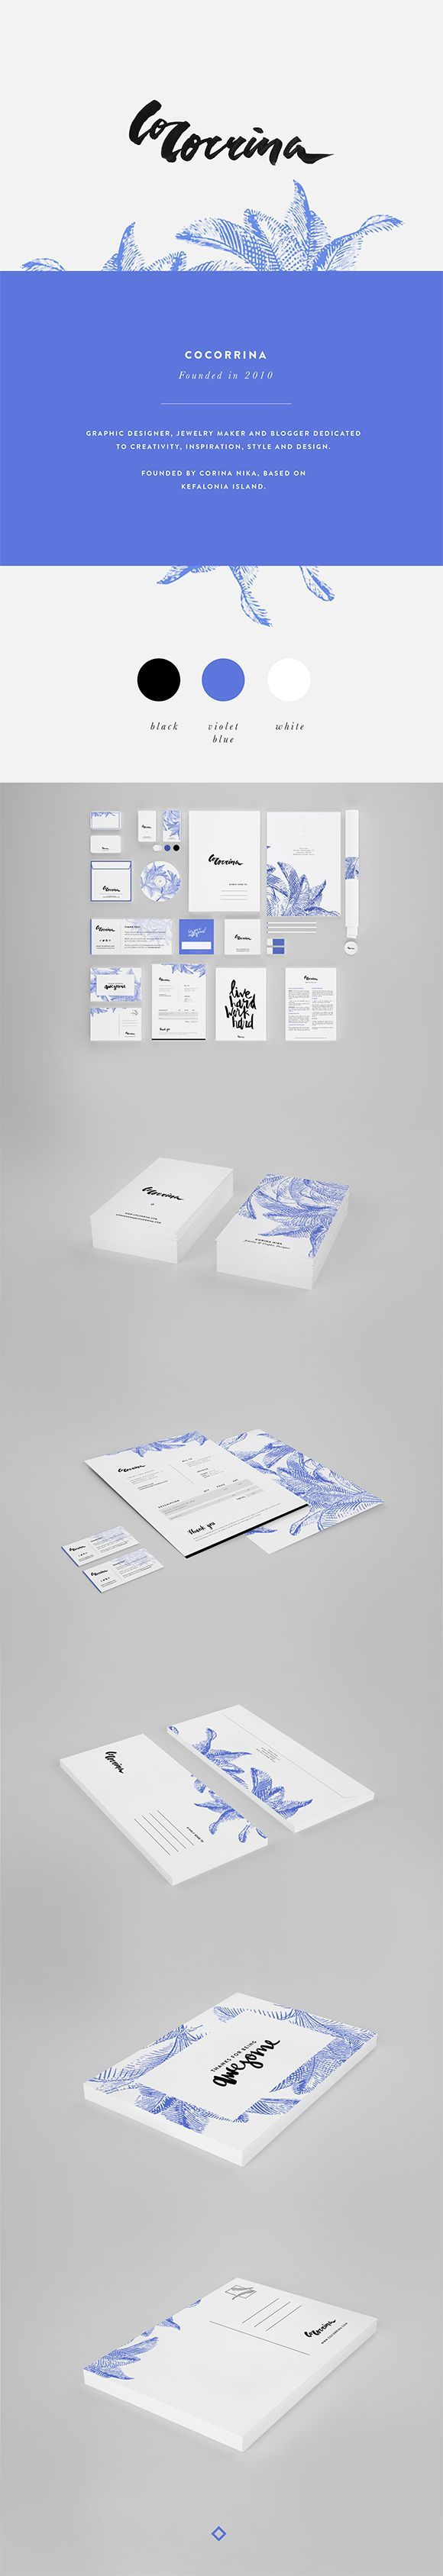 Another branding example. I like the cleanness that the color scheme brings. Everything is obviously well thought out--simple but effective and memorable. Good to think about for cohesiveness in publications.